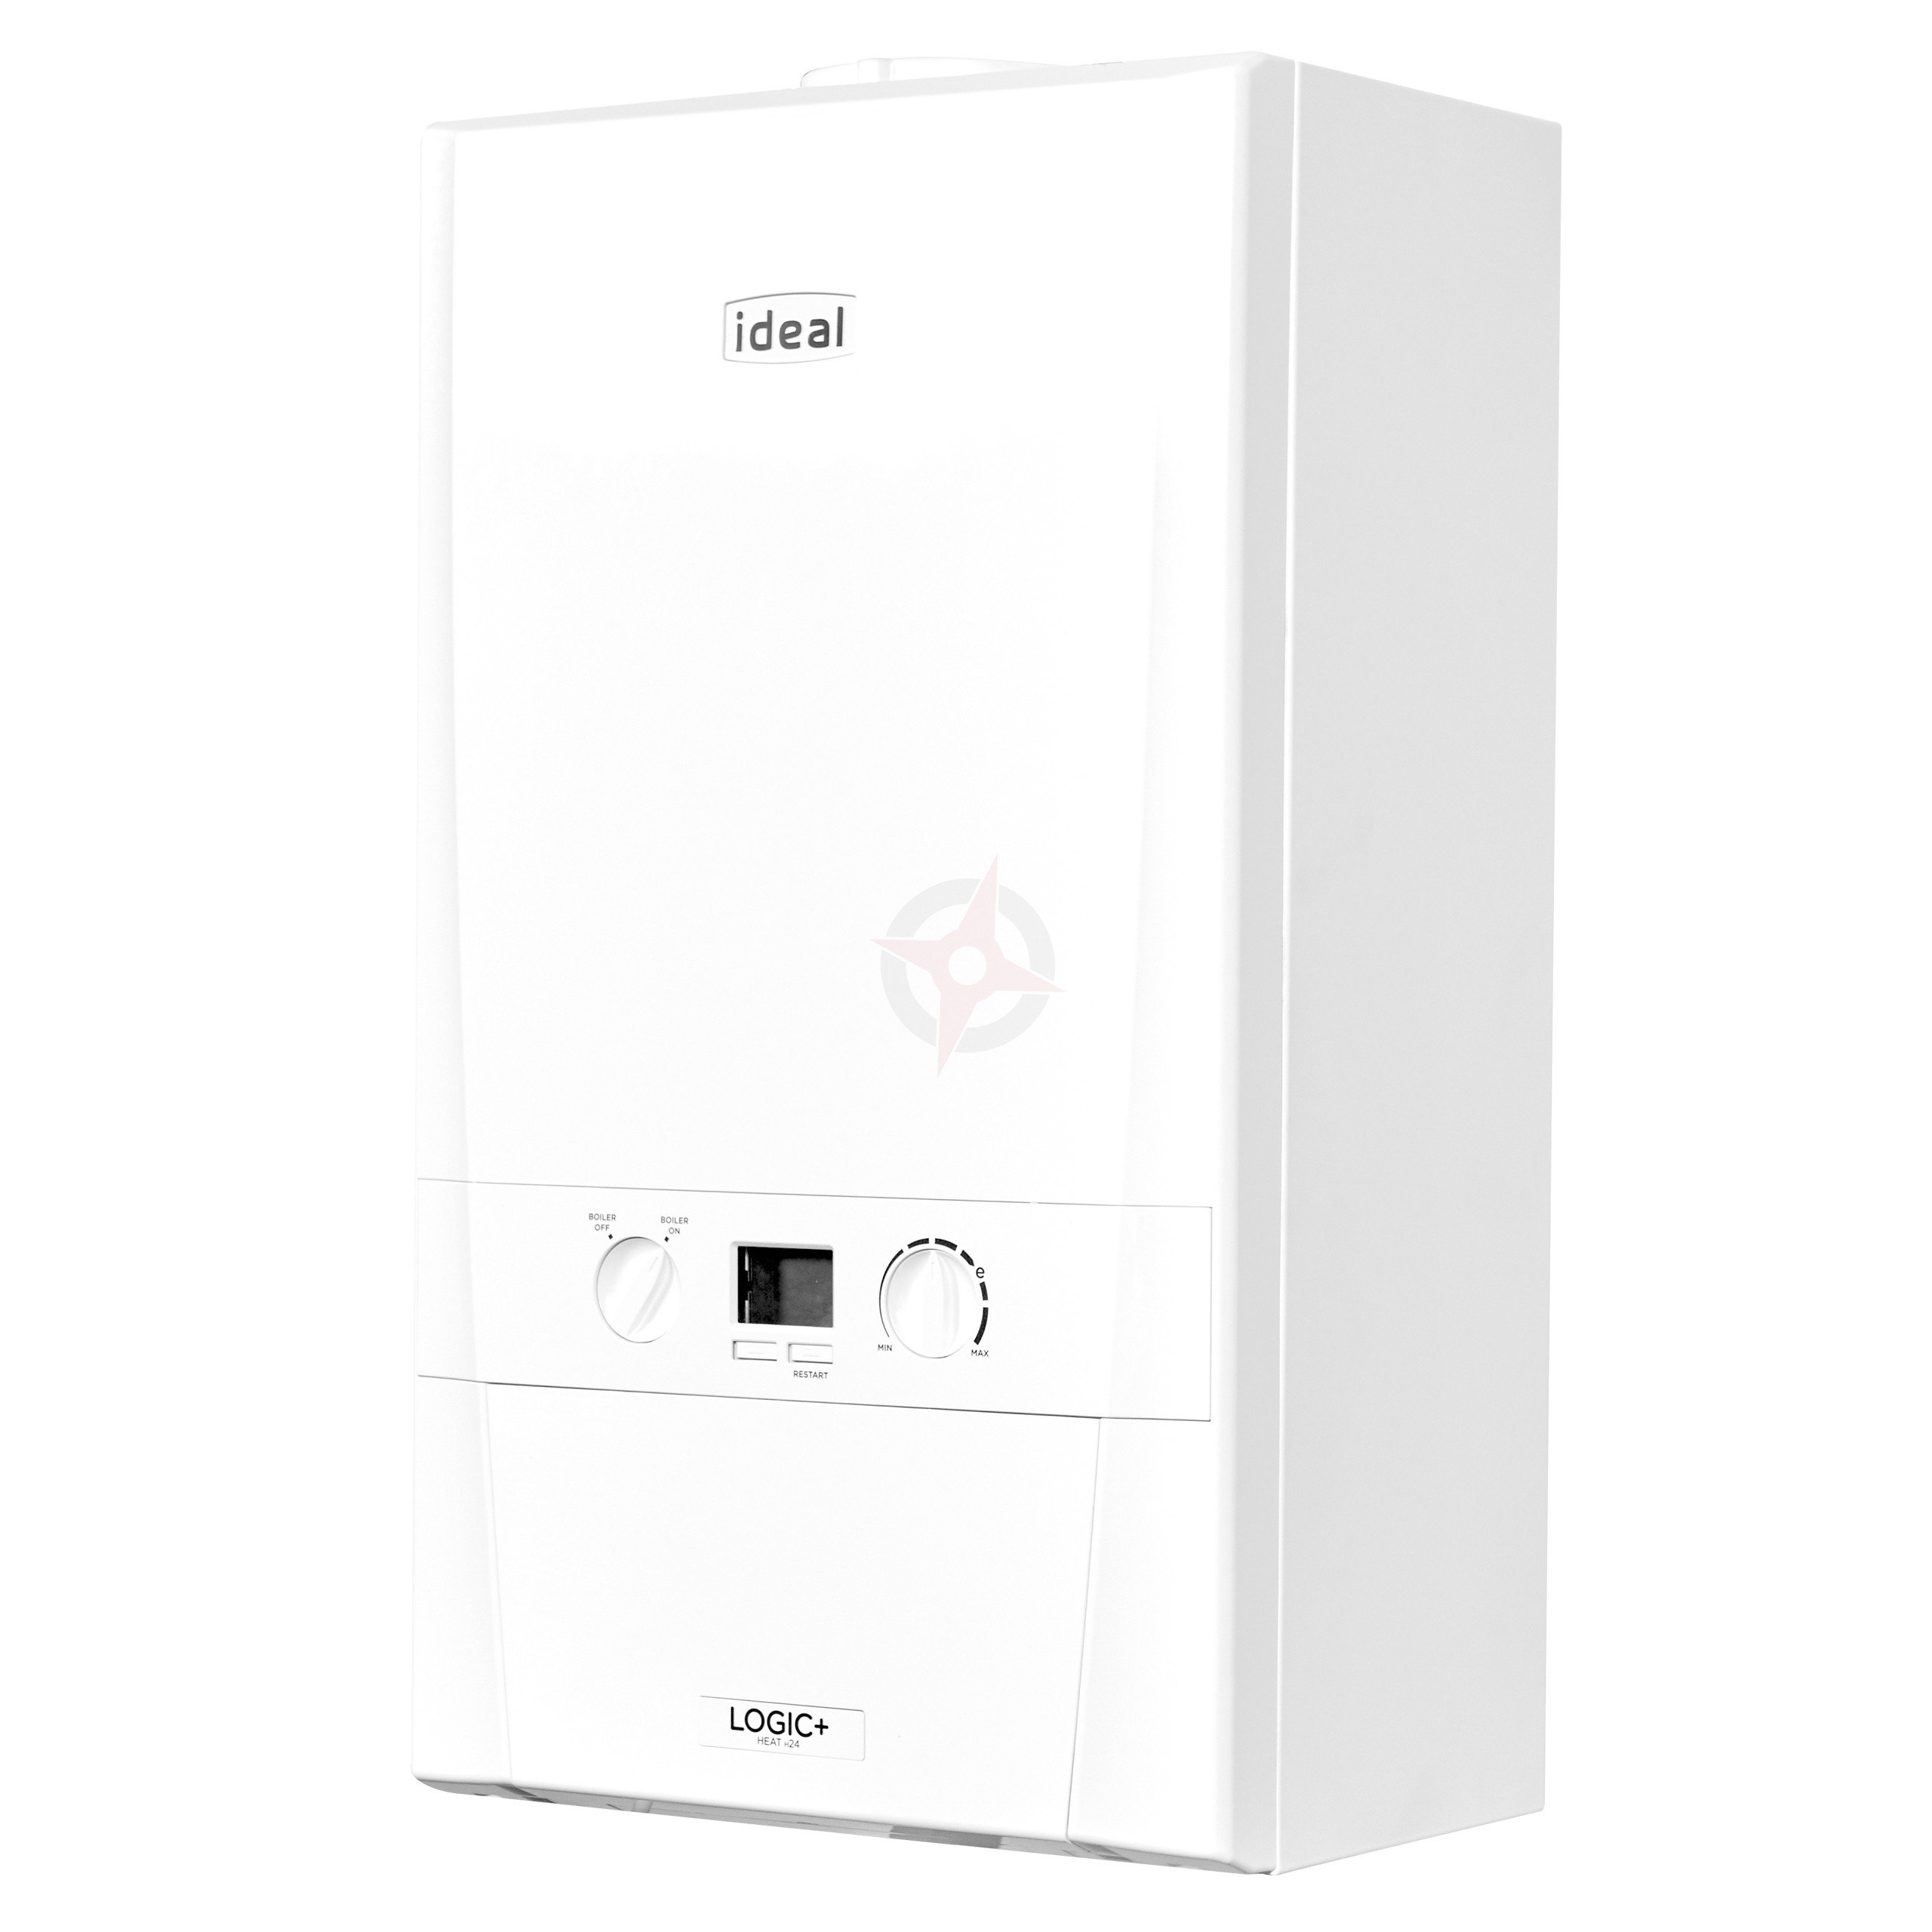 Ideal Logic+ (Plus model) 24 (ErP) Heat Boiler Only